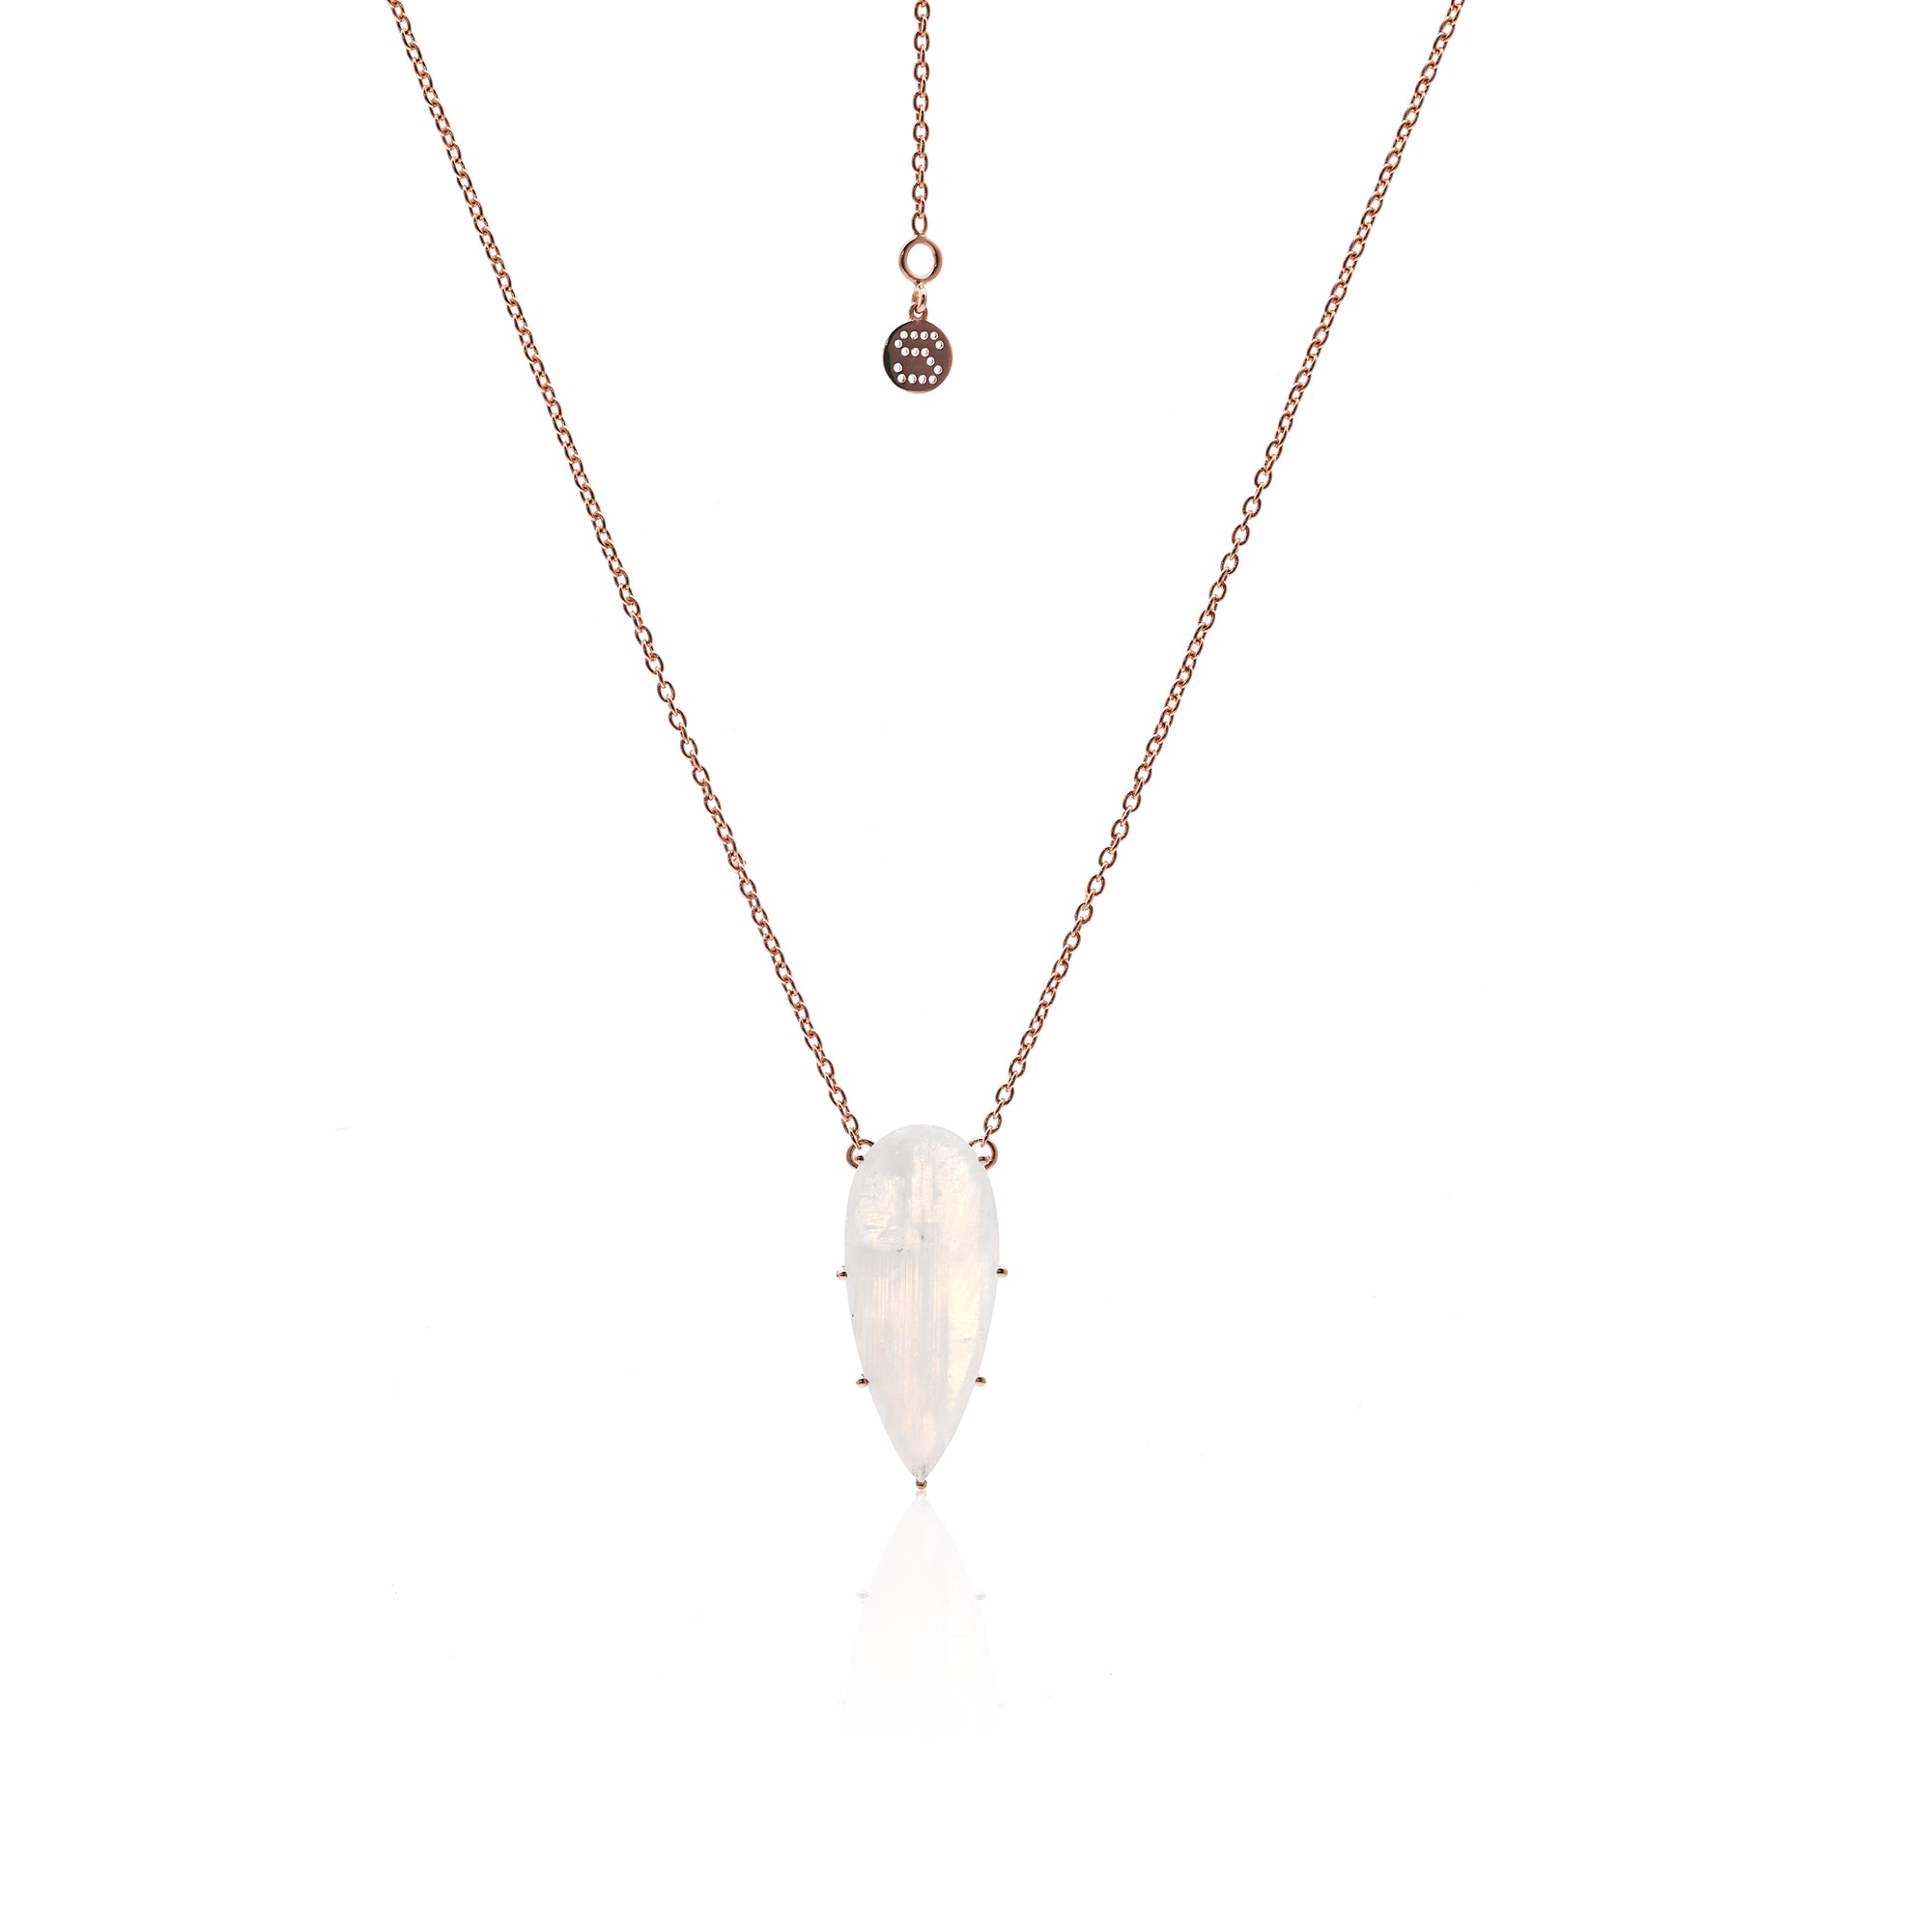 Silk&Steel Jewellery Diva Necklace - Sterling Silver Rose Gold + Moonstone From Aria Collection